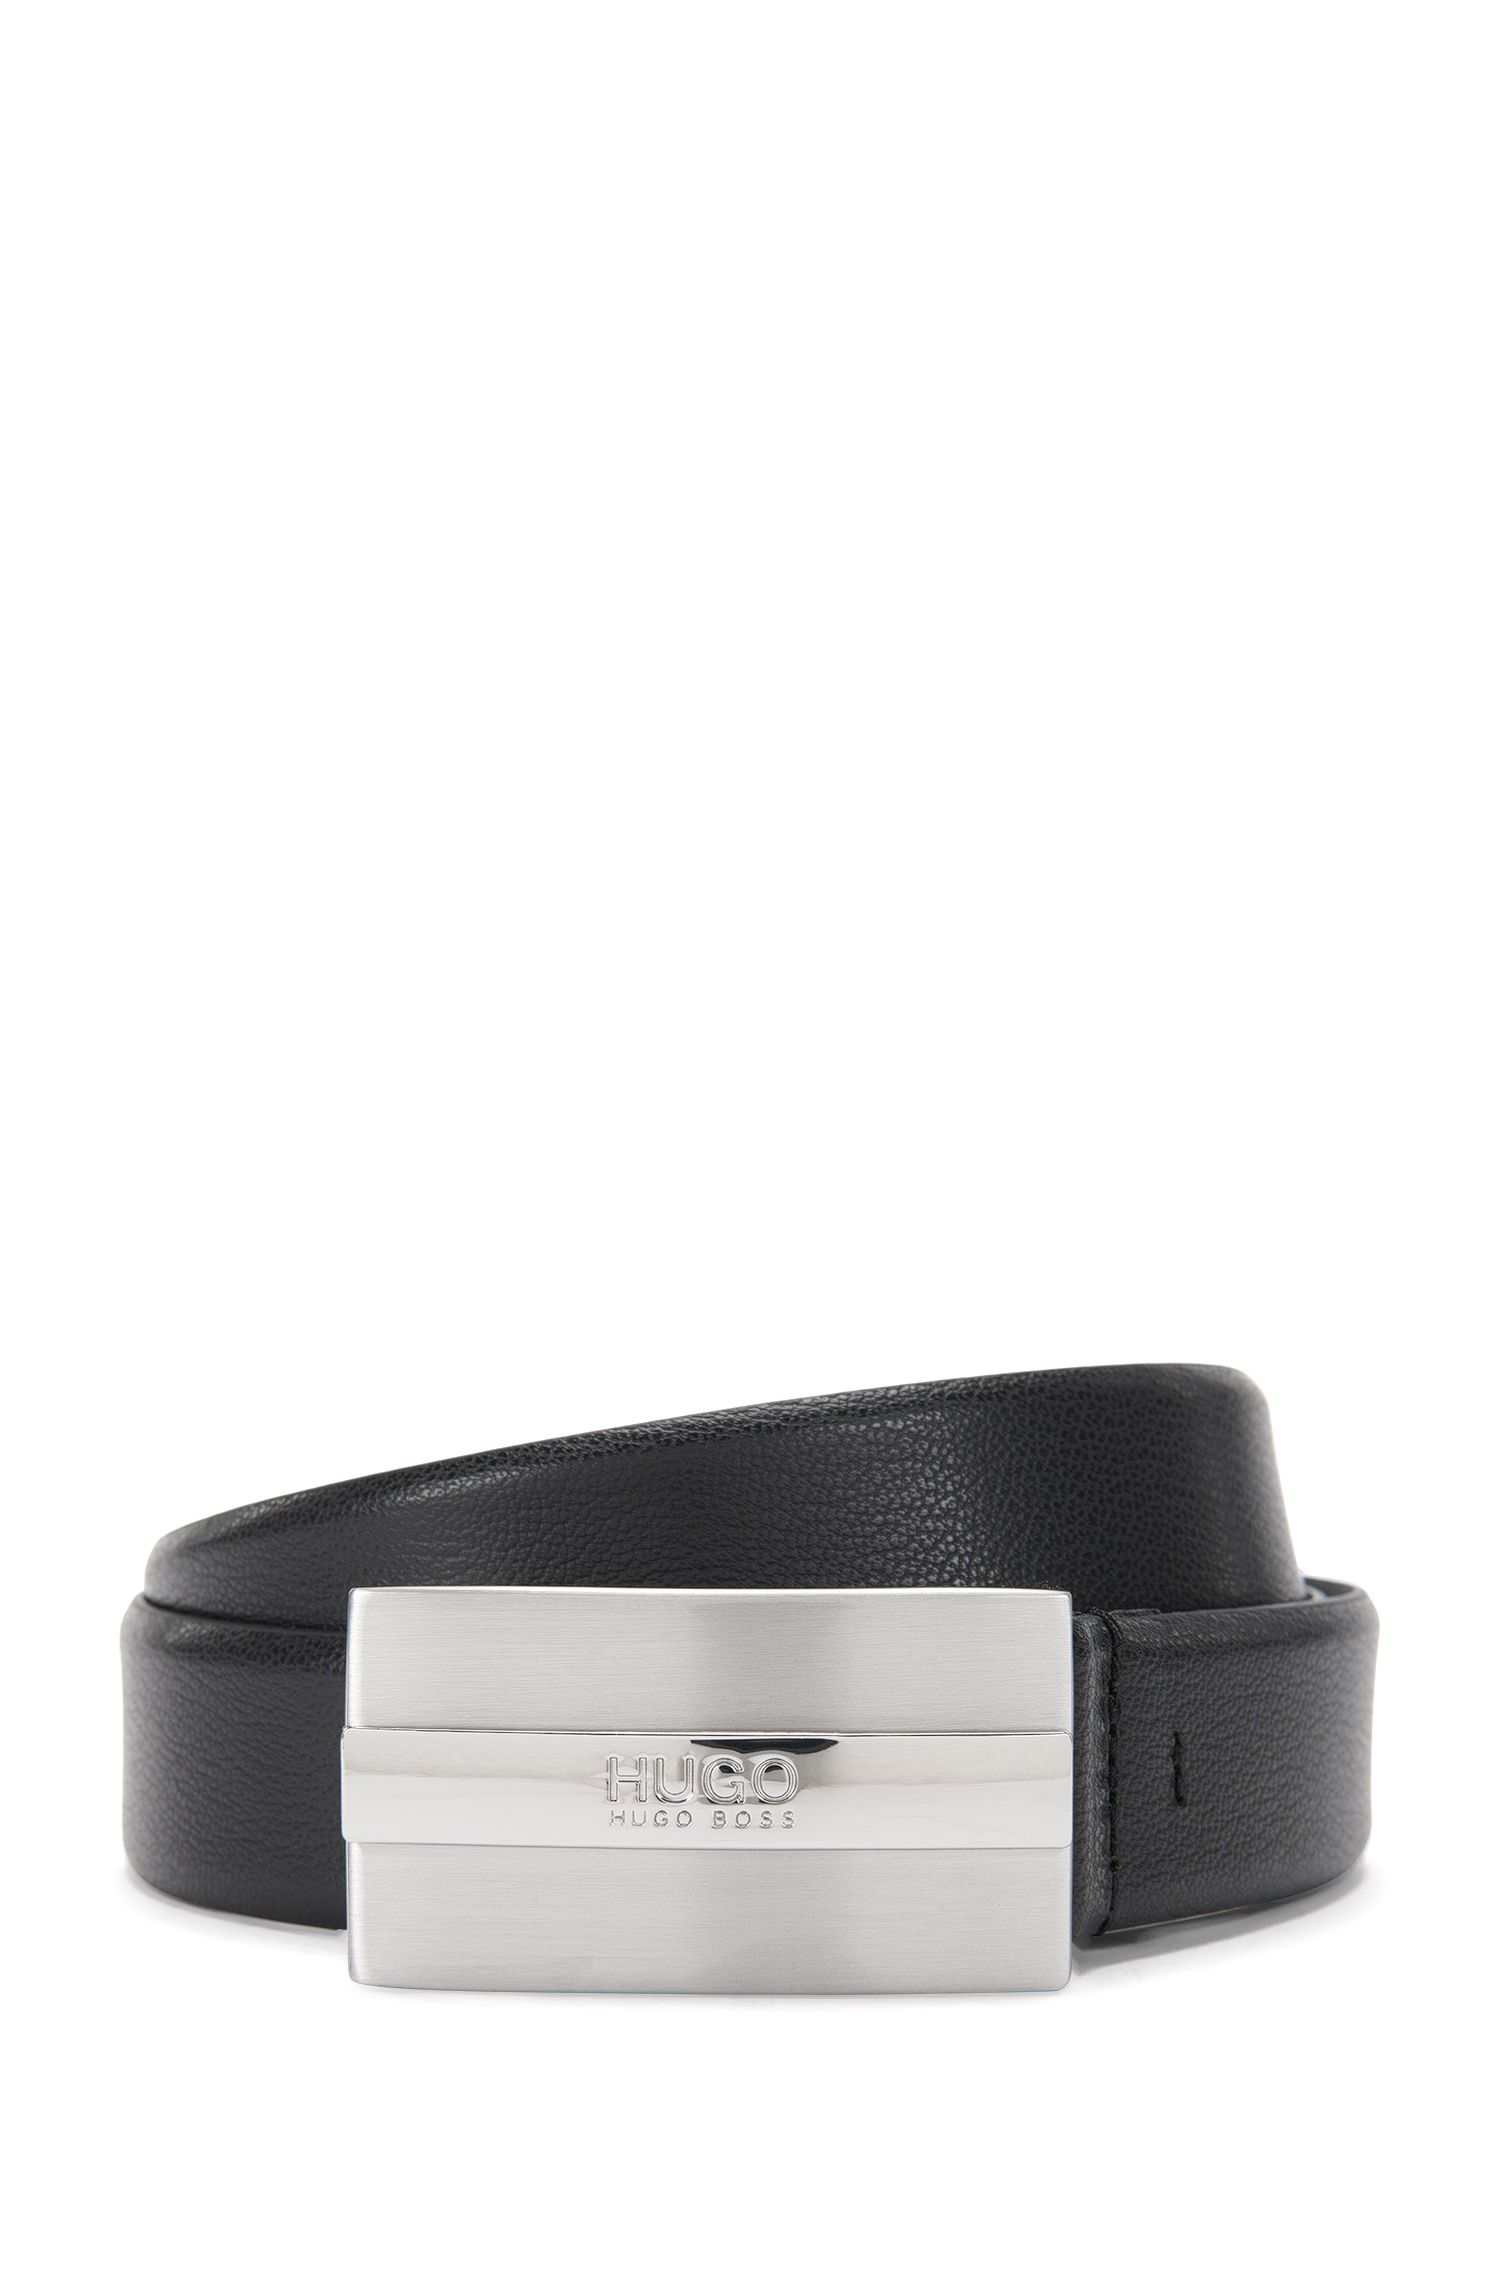 Leather belt with brushed-silver plaque buckle by HUGO Man